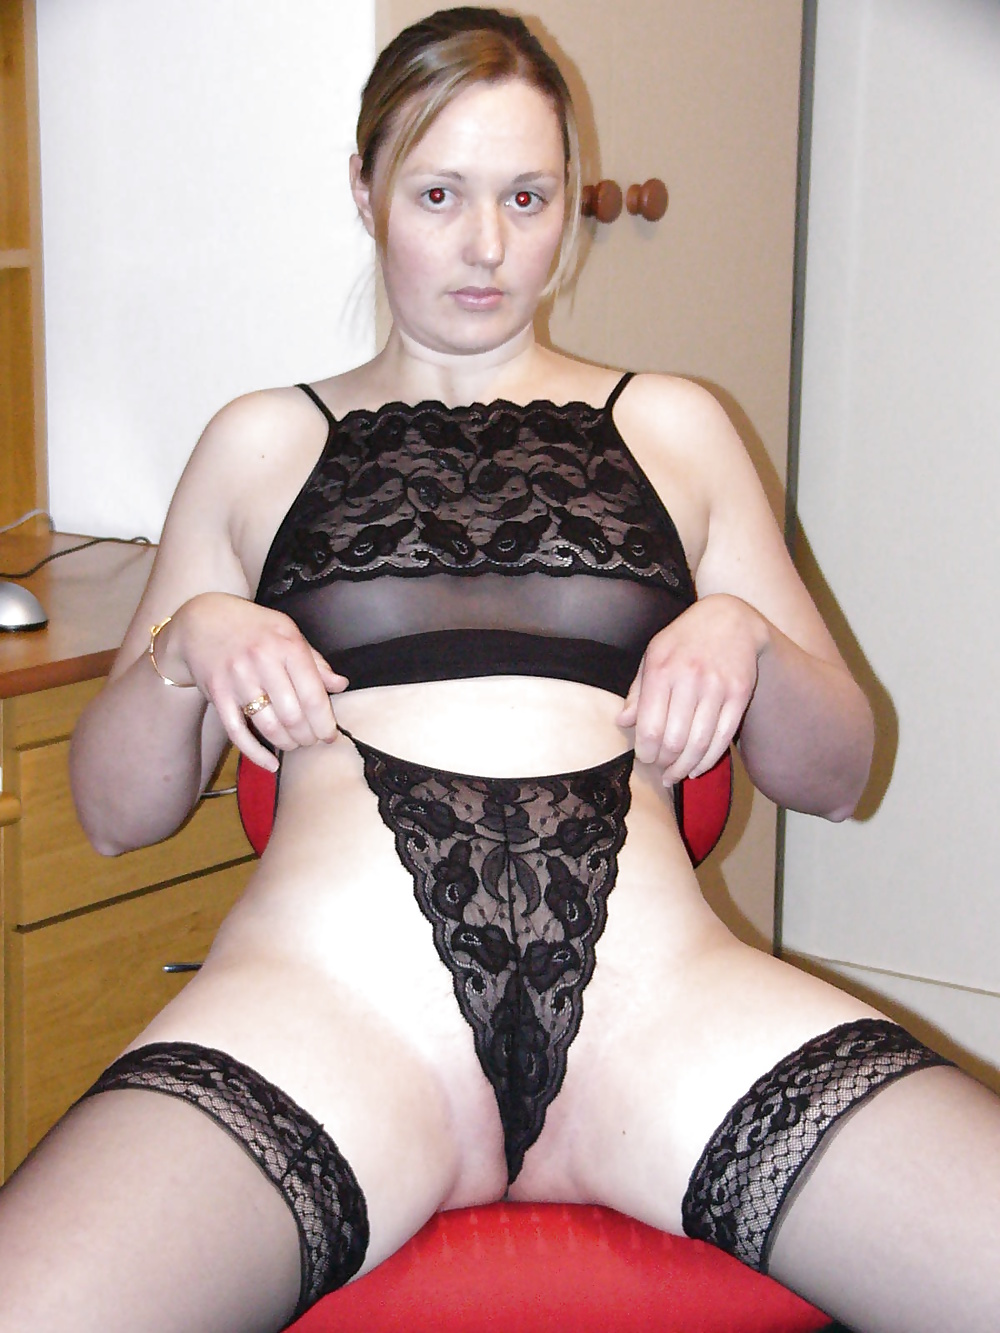 Pretty Blonde Charley Removes He Black Lace Thong To Spread Pussy Lips Wide